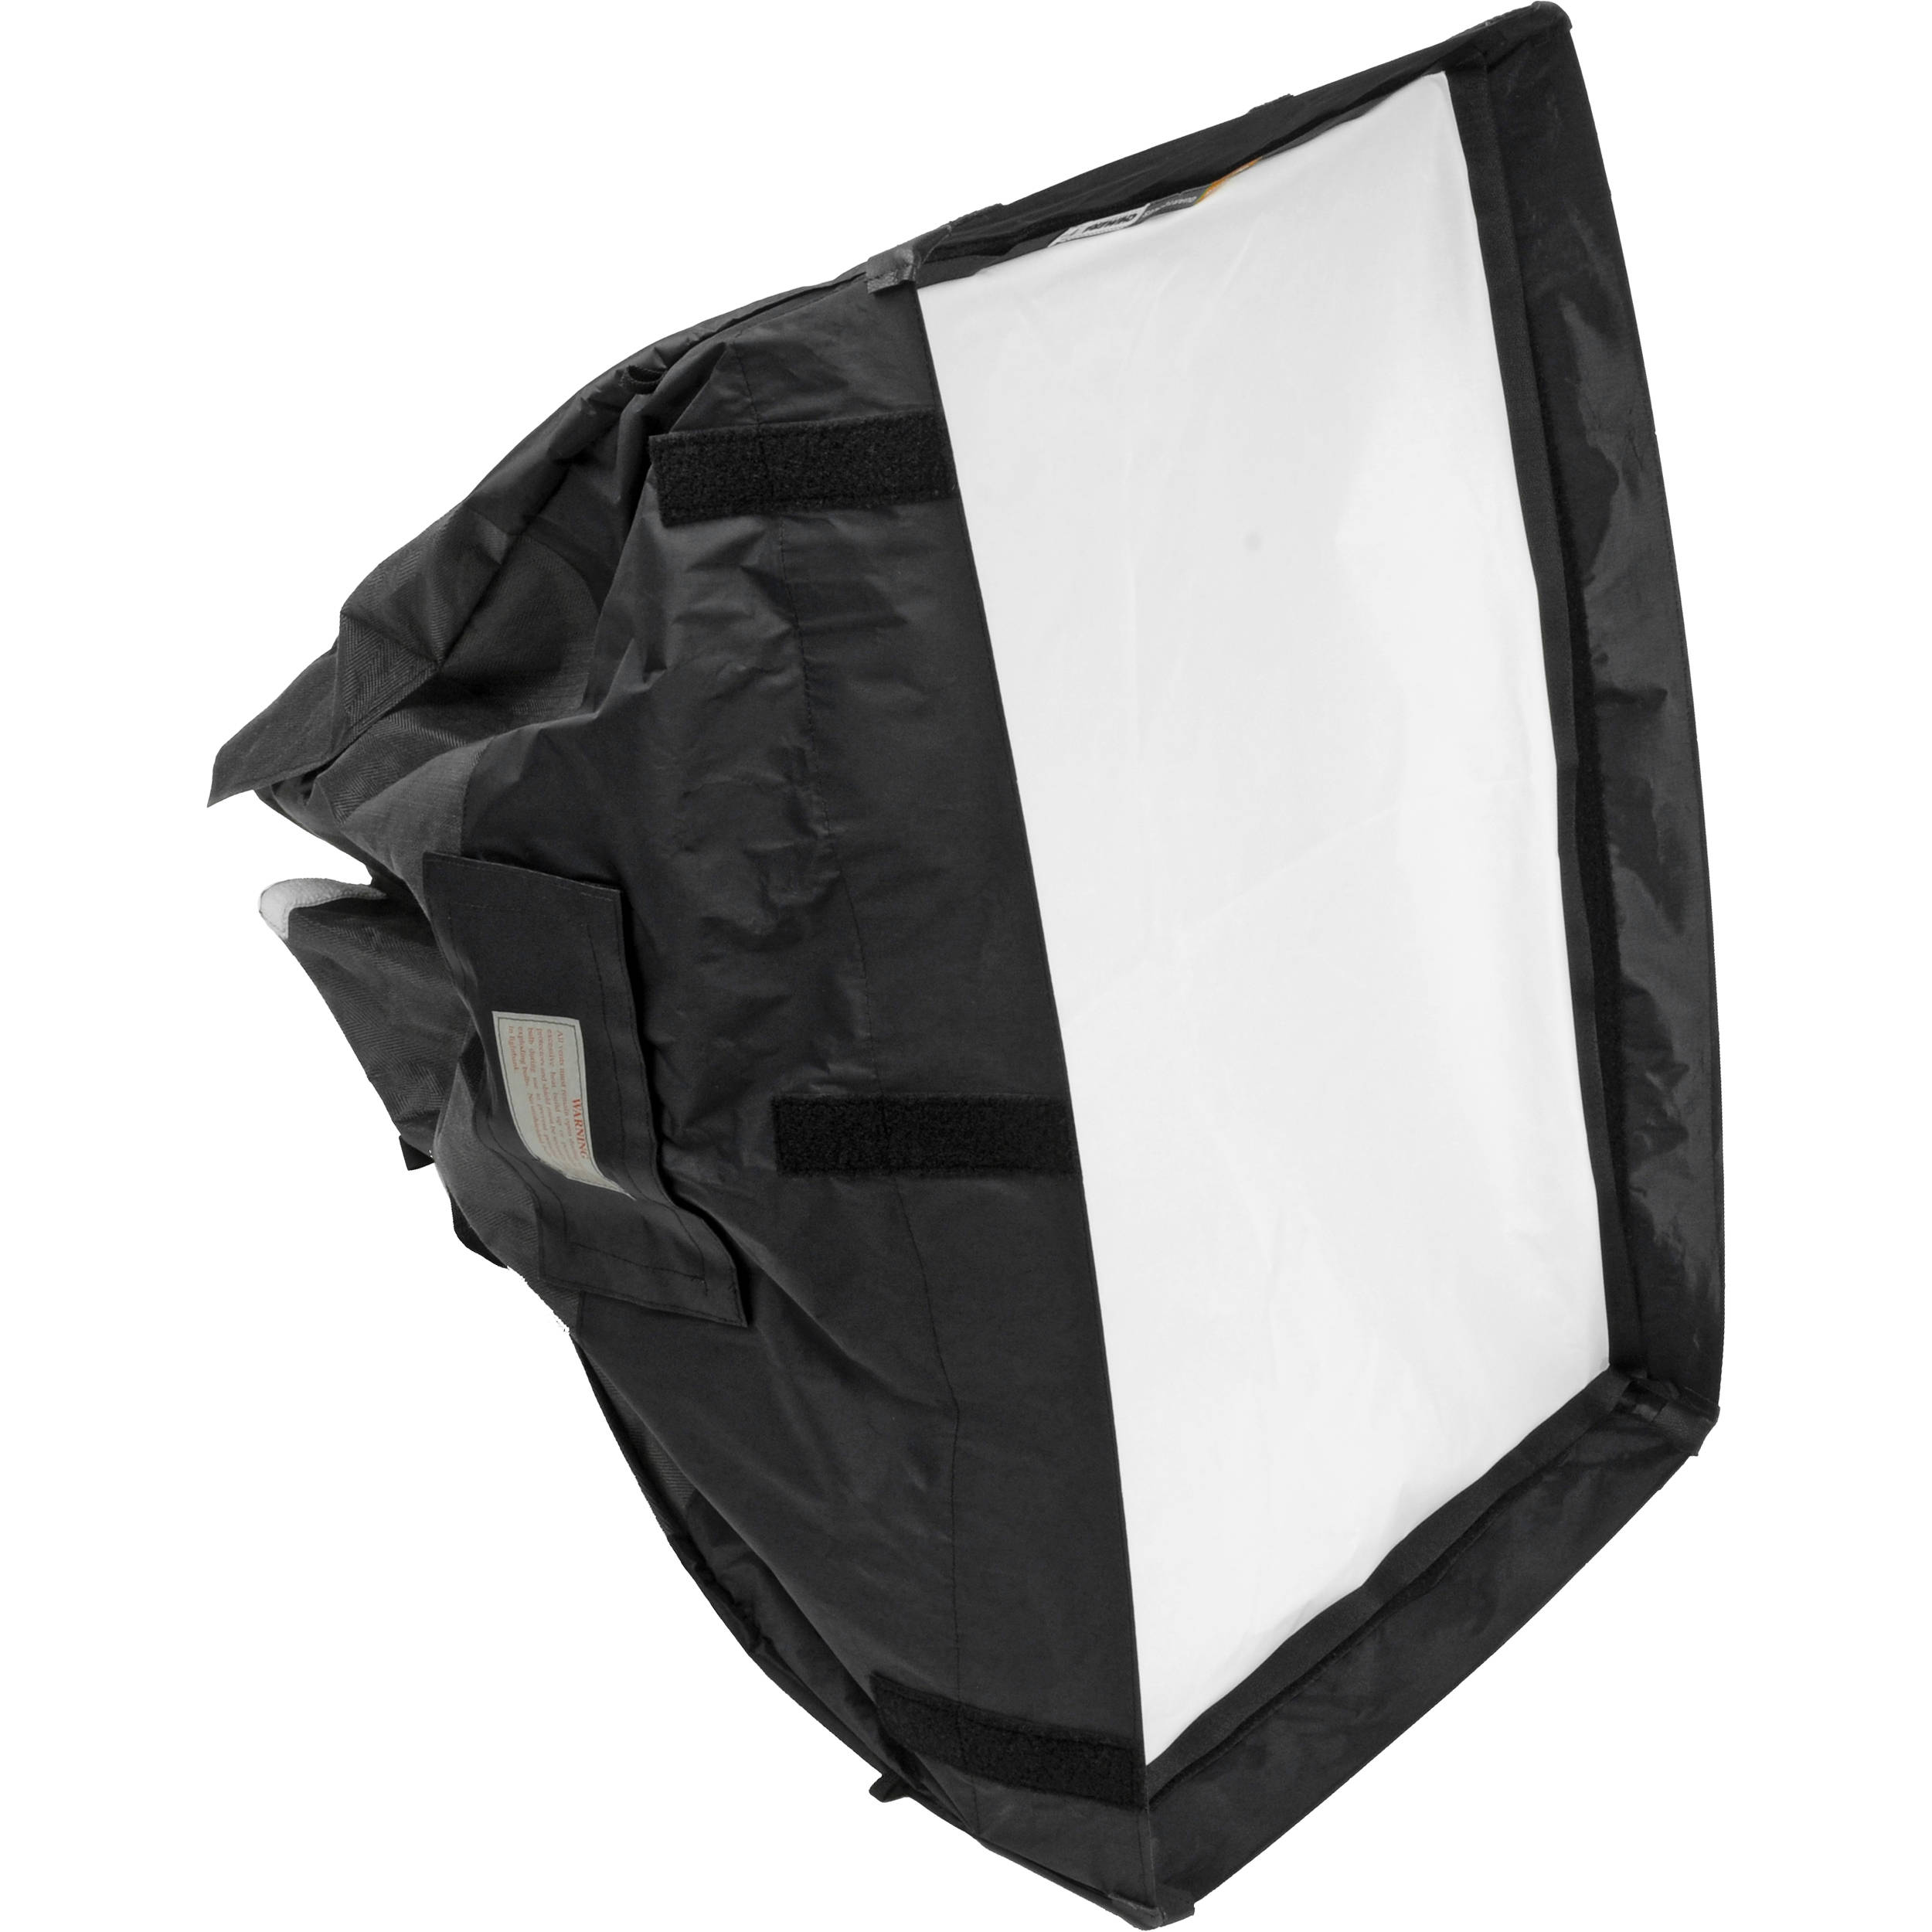 Chimera Medium Diffusion Soft Box